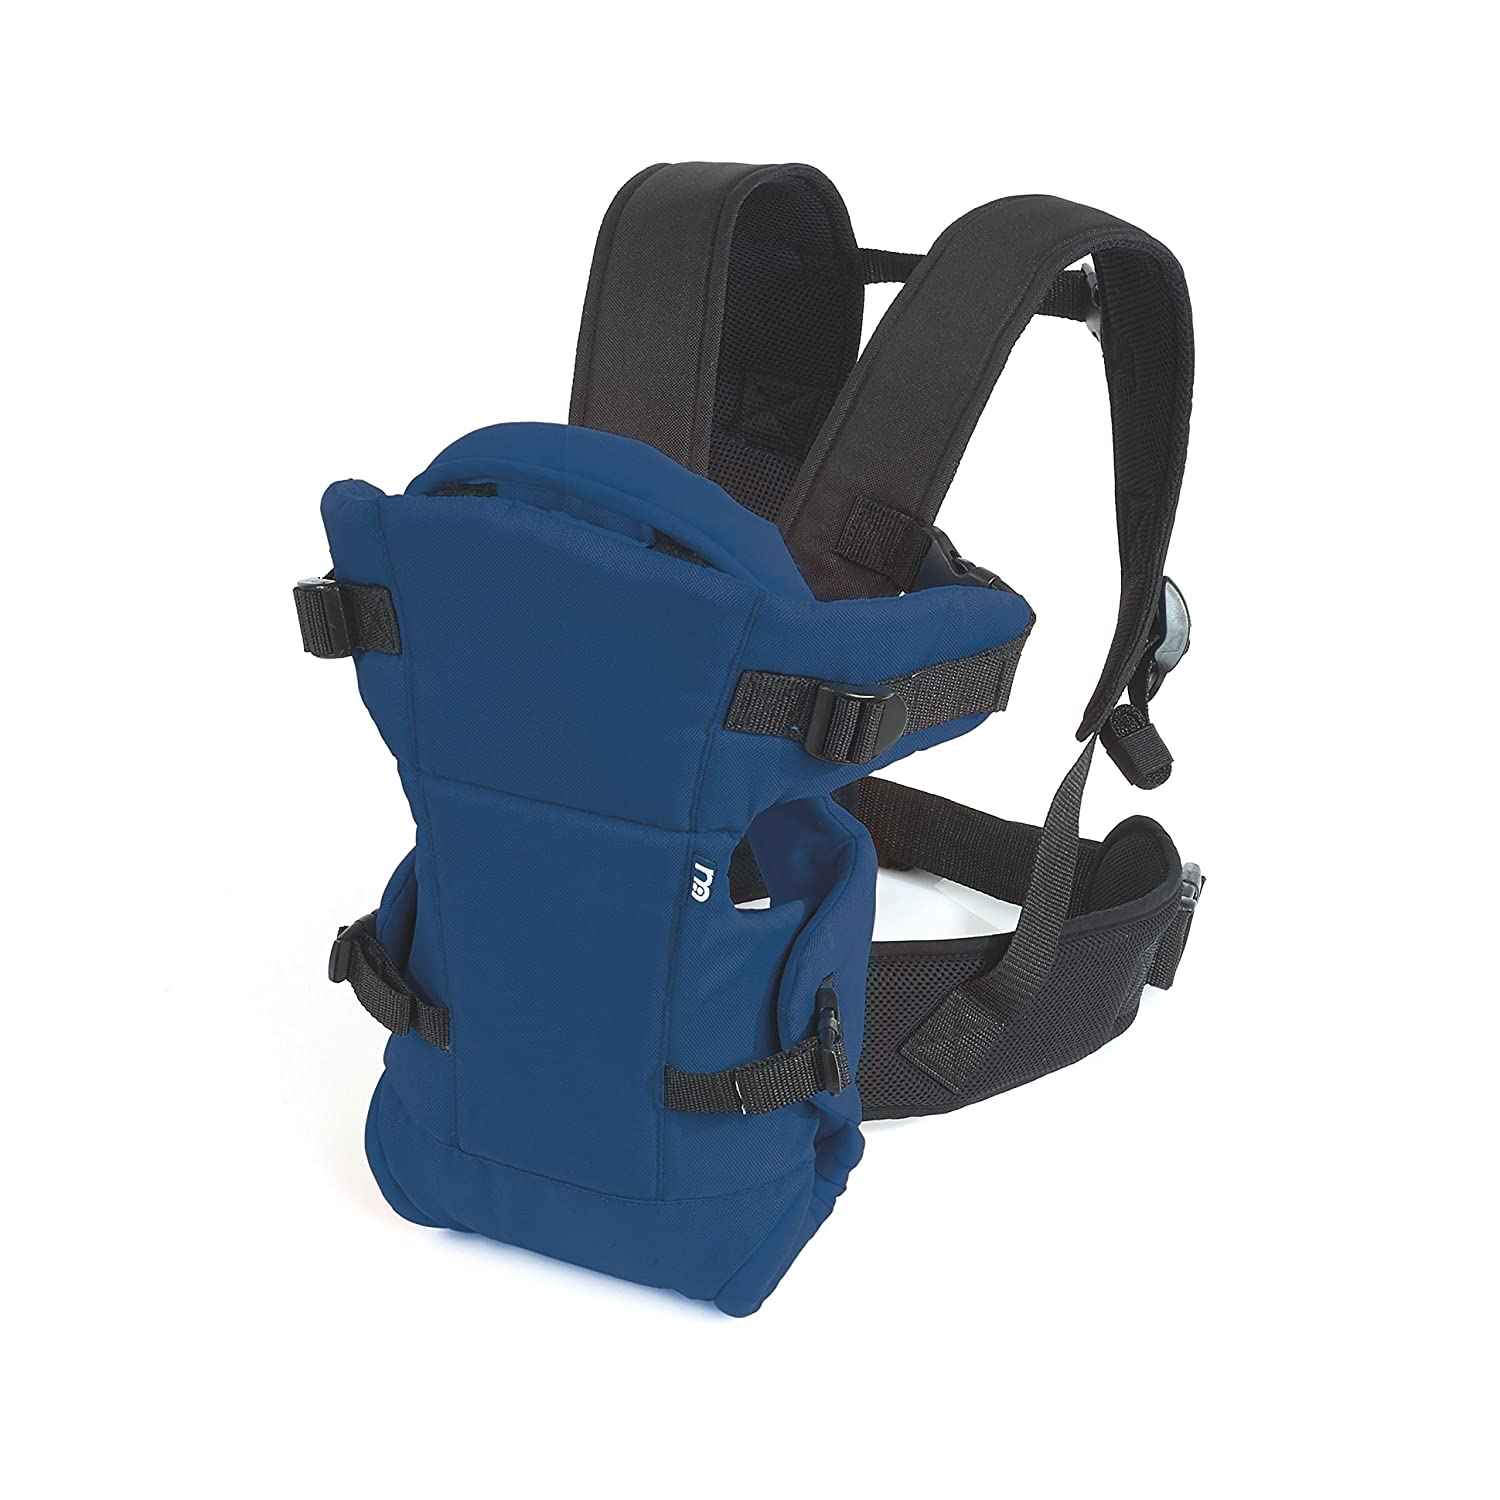 Mothercare Three Position Baby Carrier (Purple)